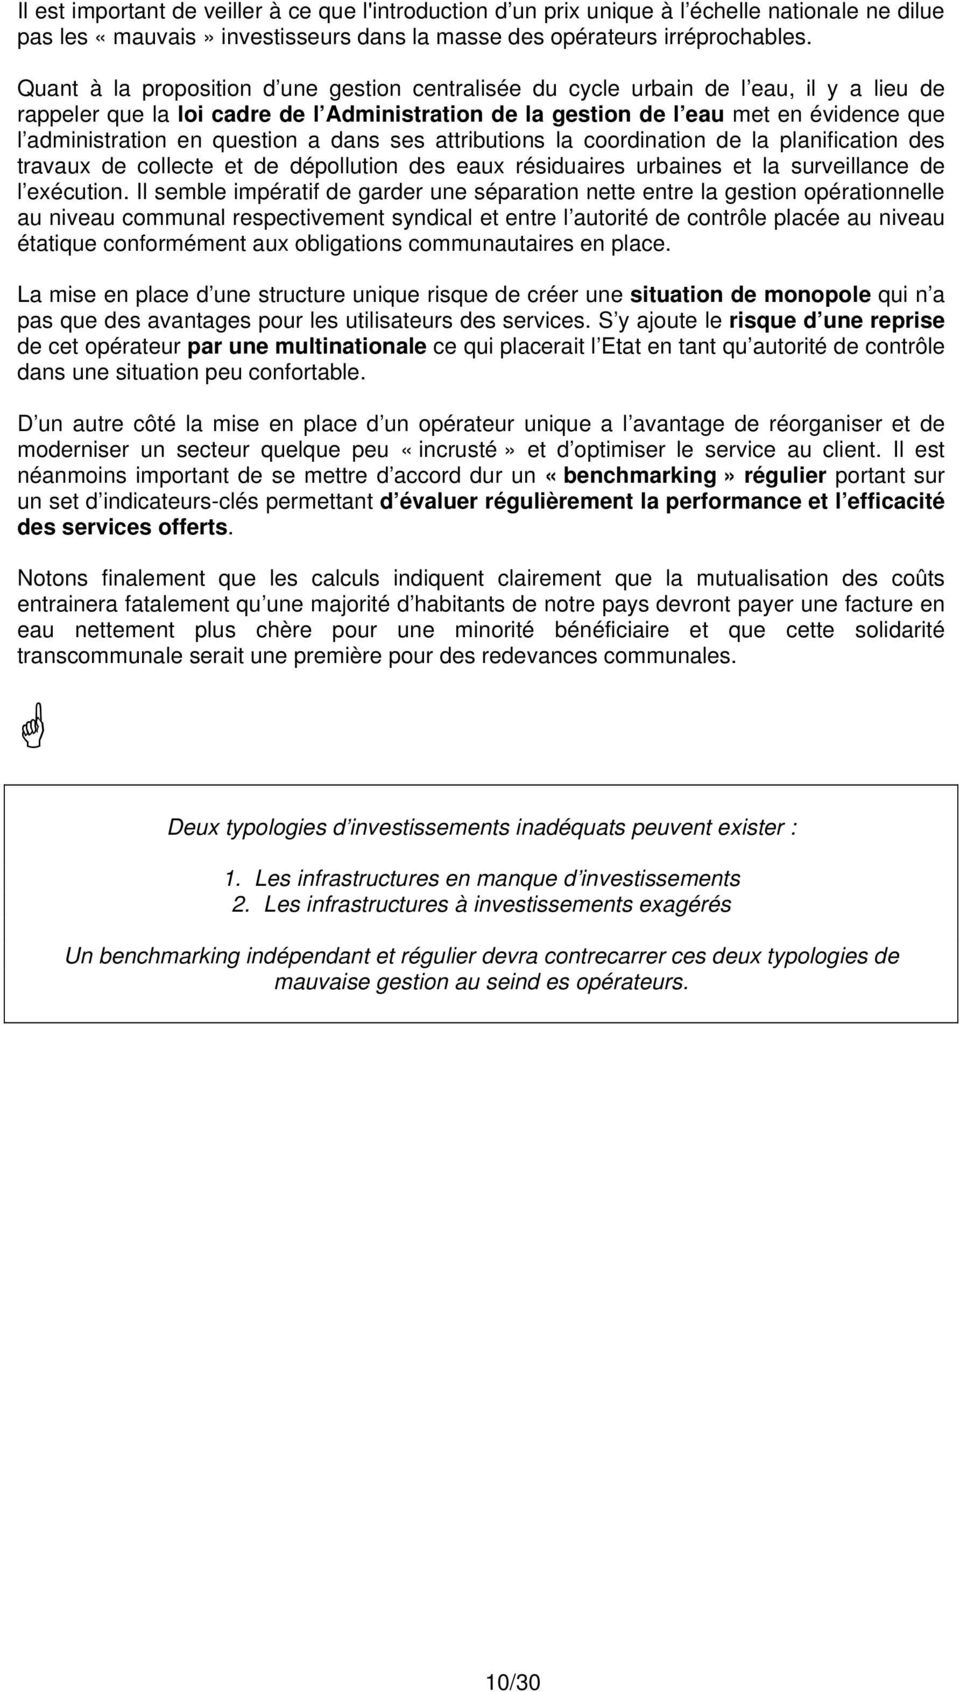 question a dans ses attributions la coordination de la planification des travaux de collecte et de dépollution des eaux résiduaires urbaines et la surveillance de l exécution.